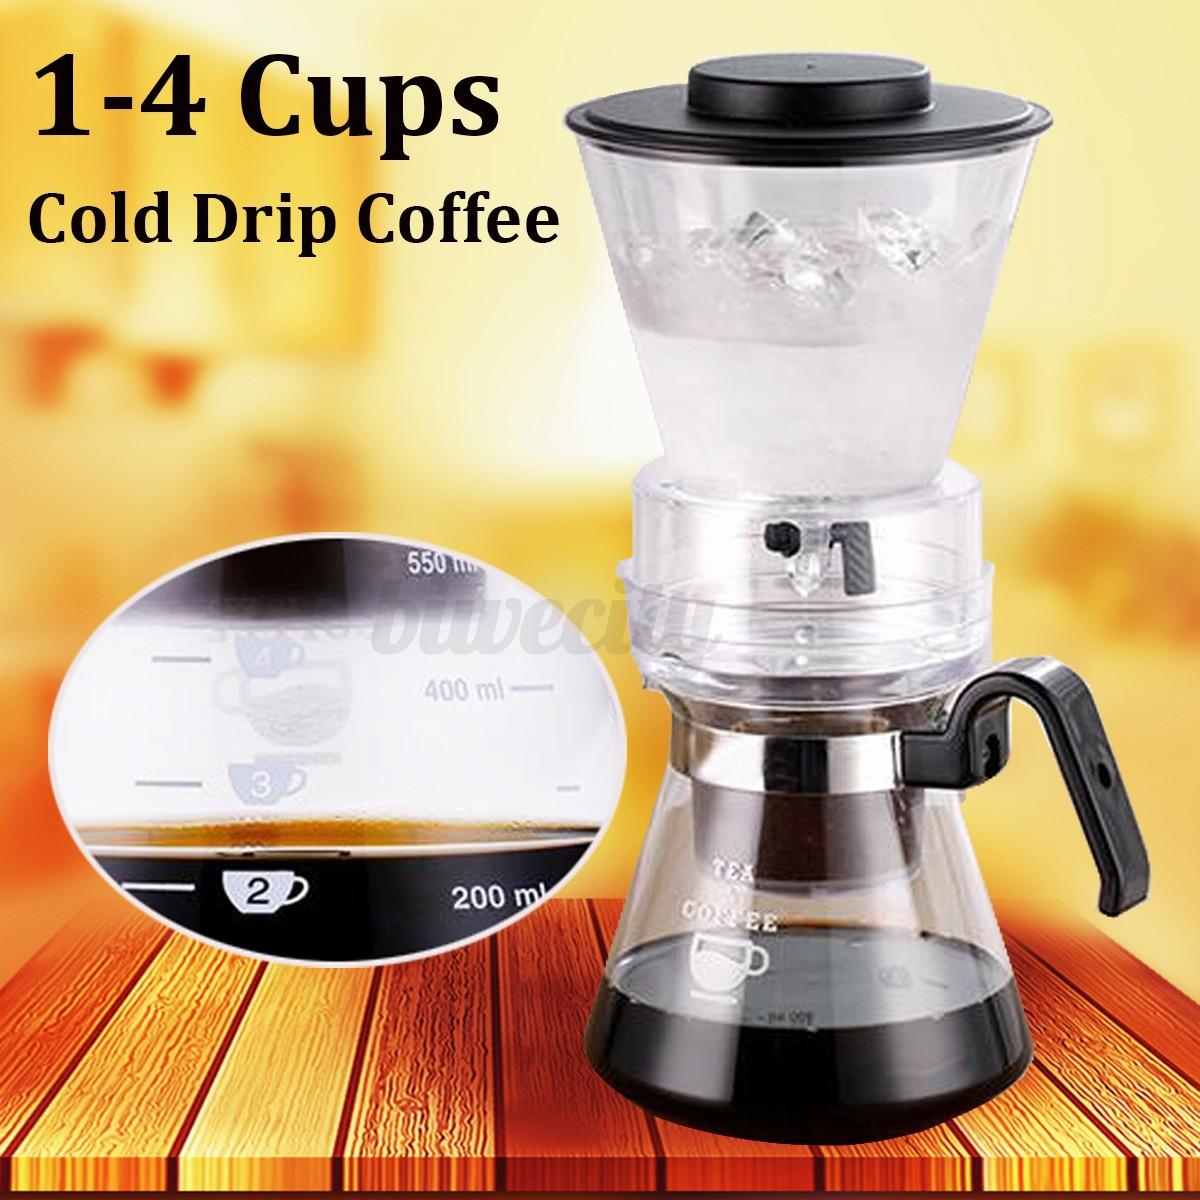 Cold Drip Coffee Maker Gumtree : 600ml Brew Coffee Cold Dutch Drip Water Home Hand Drip Maker Serve For 1-4 Cups eBay